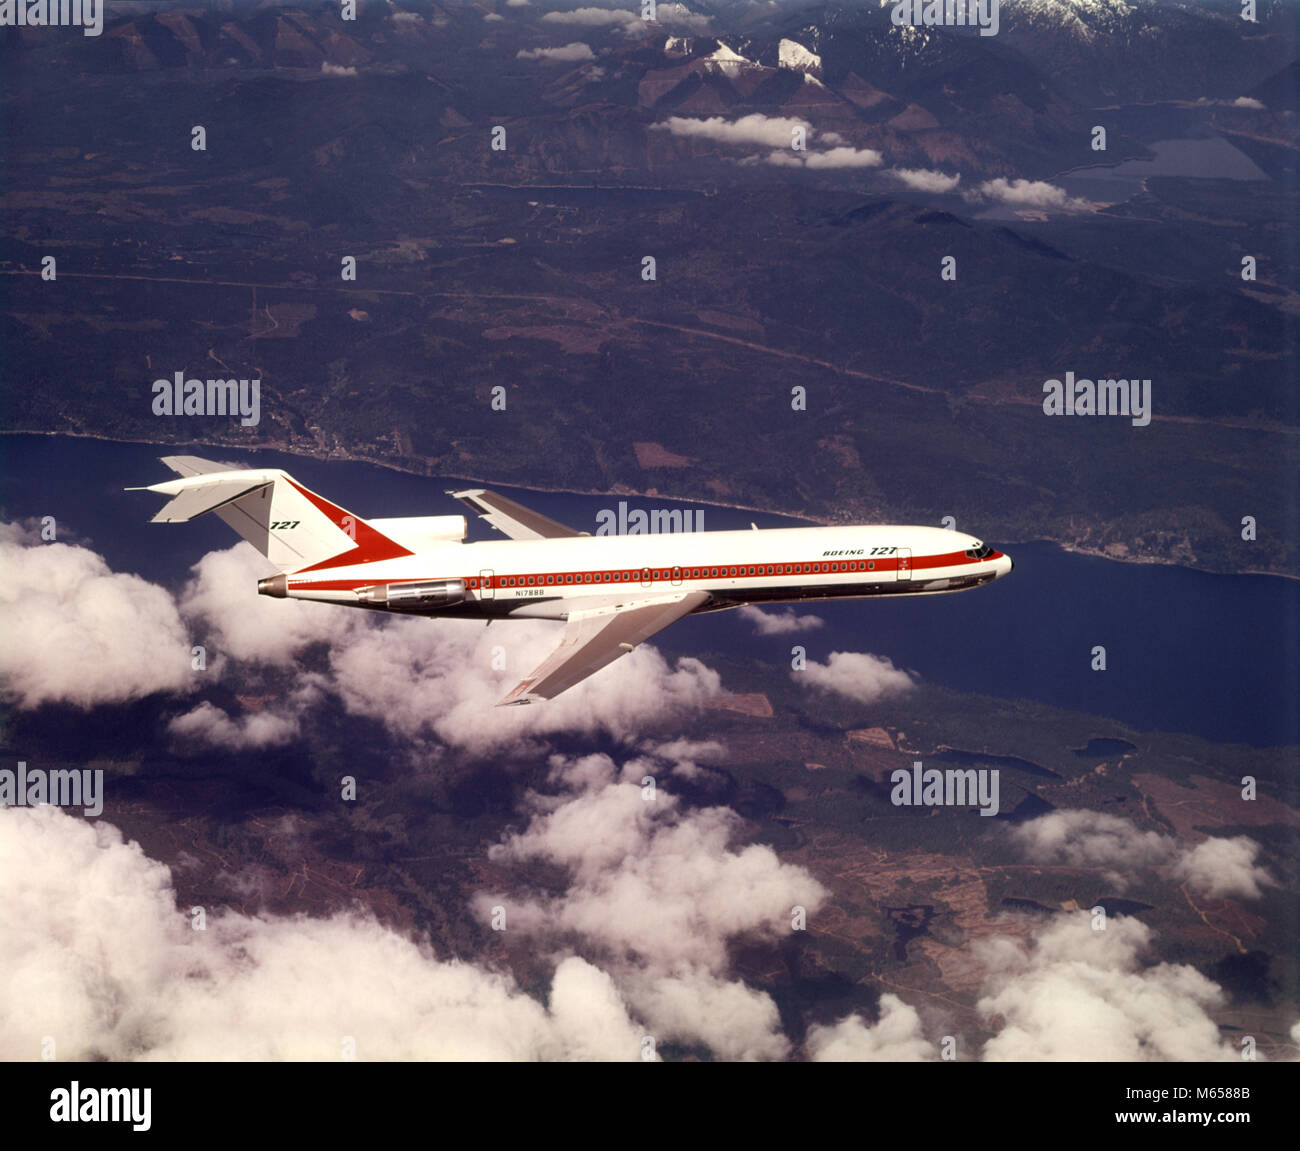 1970s BOEING 727 AIRPLANE PLANE FLYING TRANSPORTATION COMMERCIAL AVIATION AIR TRAVEL - ka4349 HAR001 HARS OLD FASHIONED - Stock Image